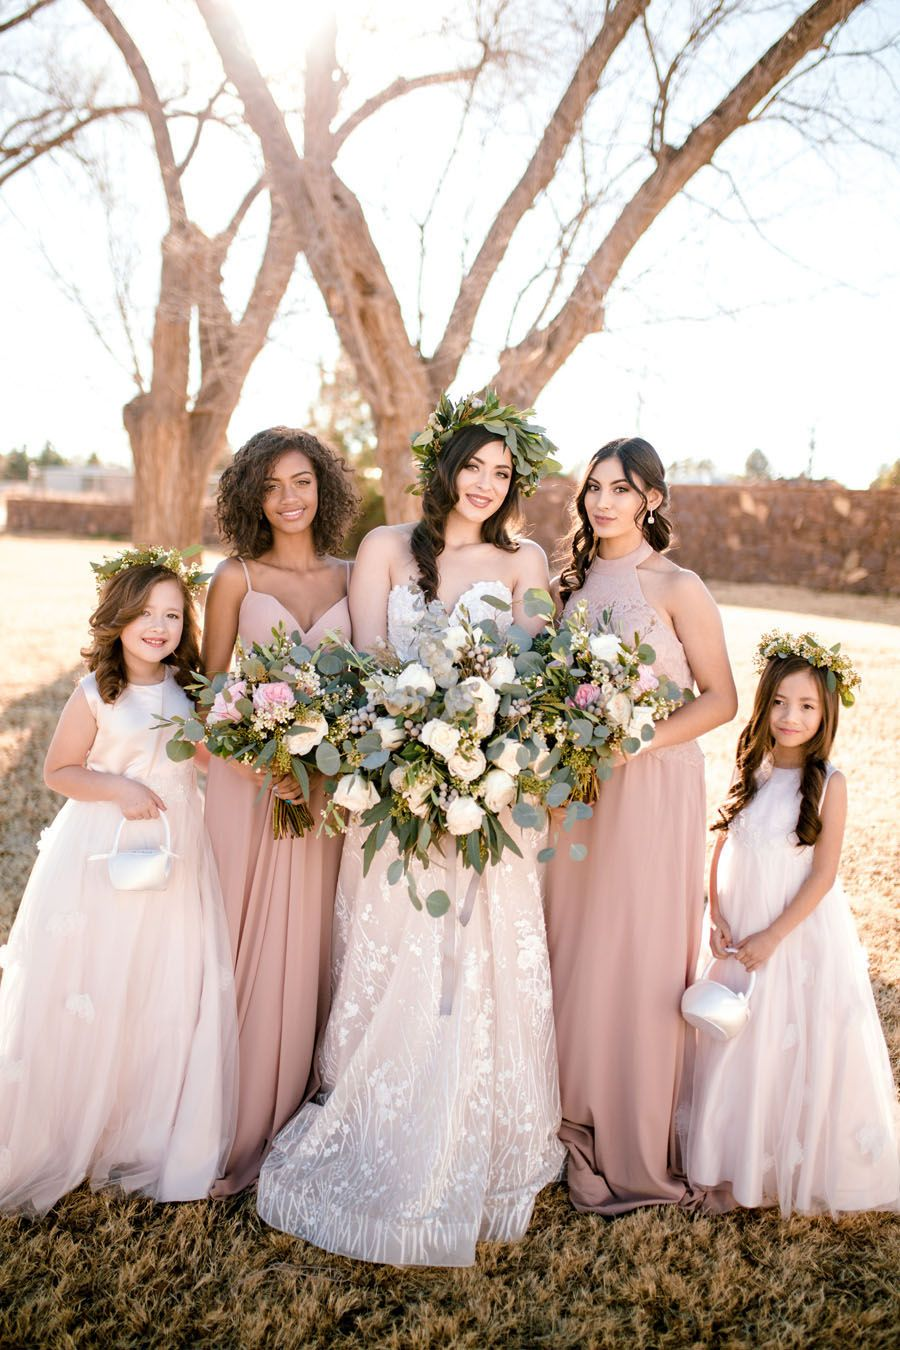 df89e8ee037 Bohemian Bridal Party - Sparrow and Gold Photography